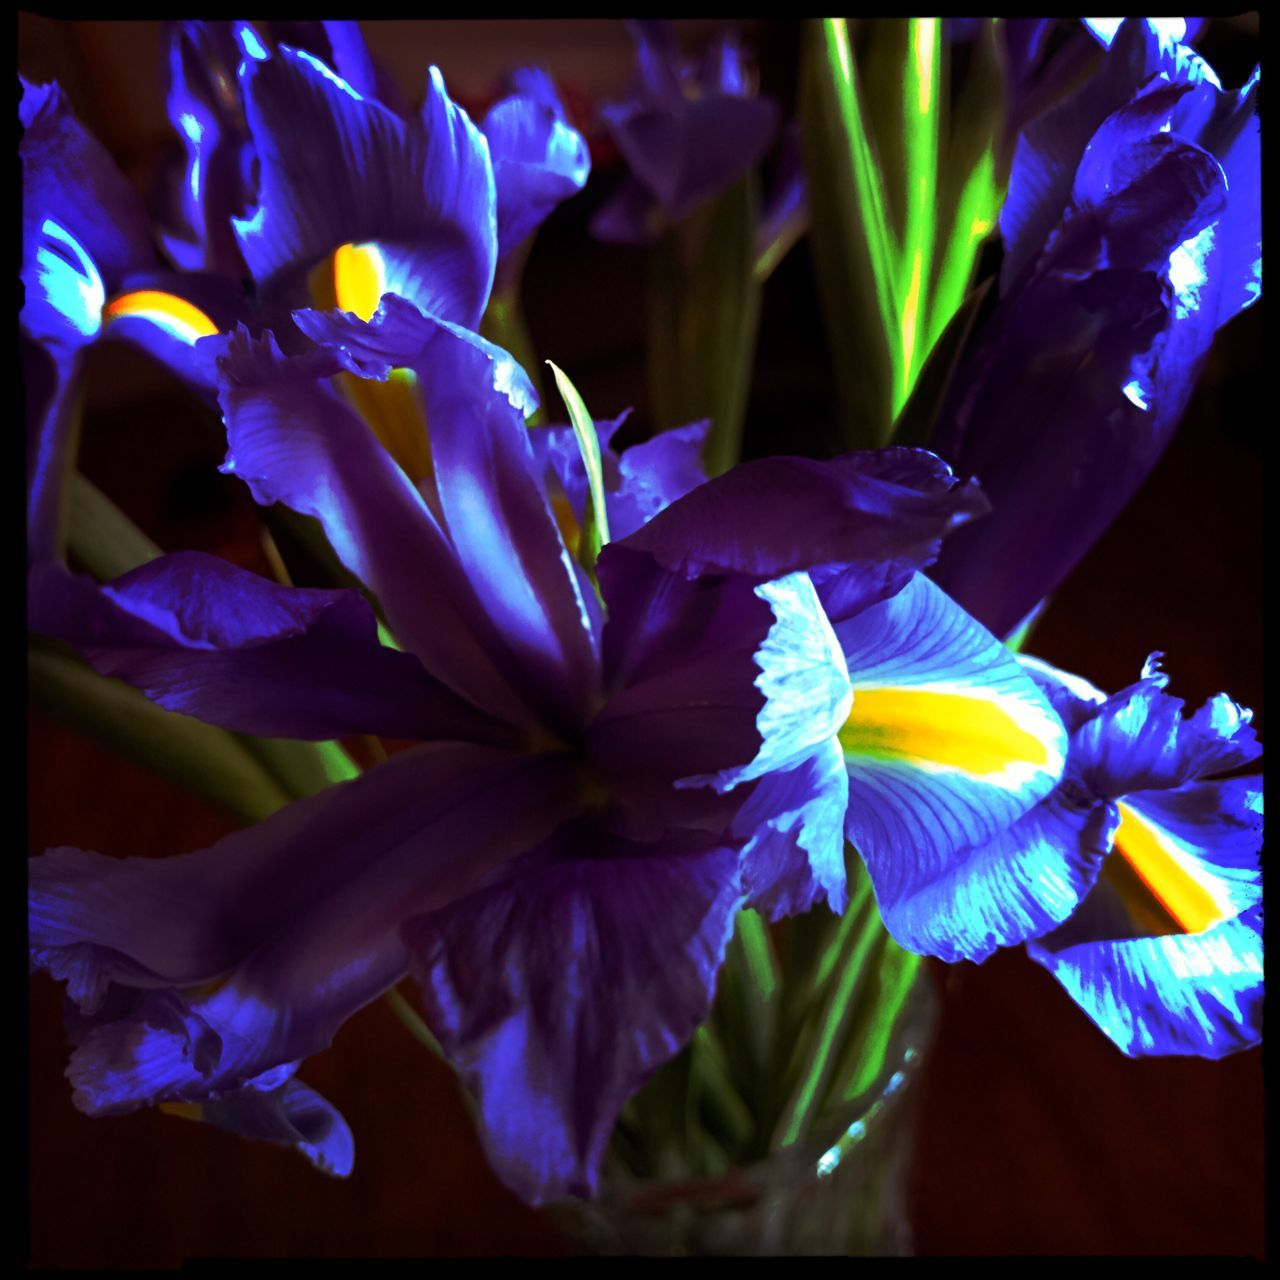 Flower Petal Fragility Freshness Beauty In Nature Flower Head Nature Close-up Blooming Purple Growth Plant No People Iris - Plant Day Outdoors Iris